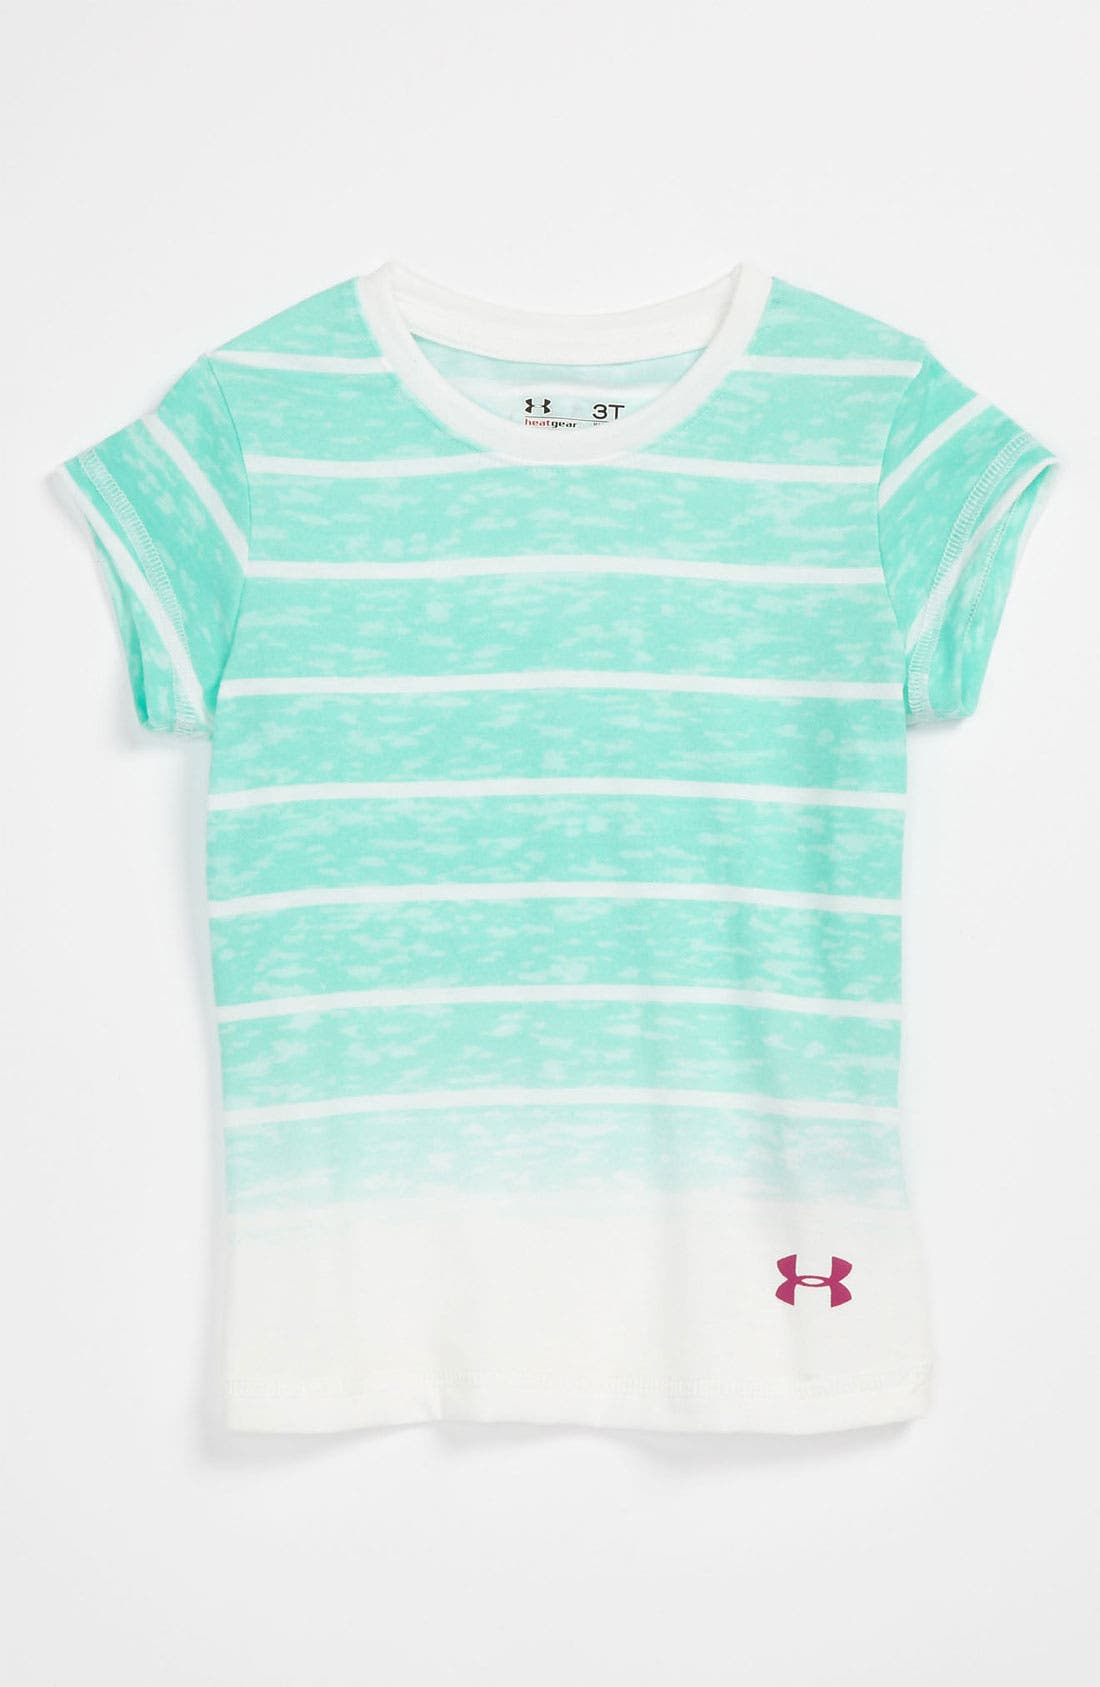 Main Image - Under Armour HeatGear™ Tee (Toddler)